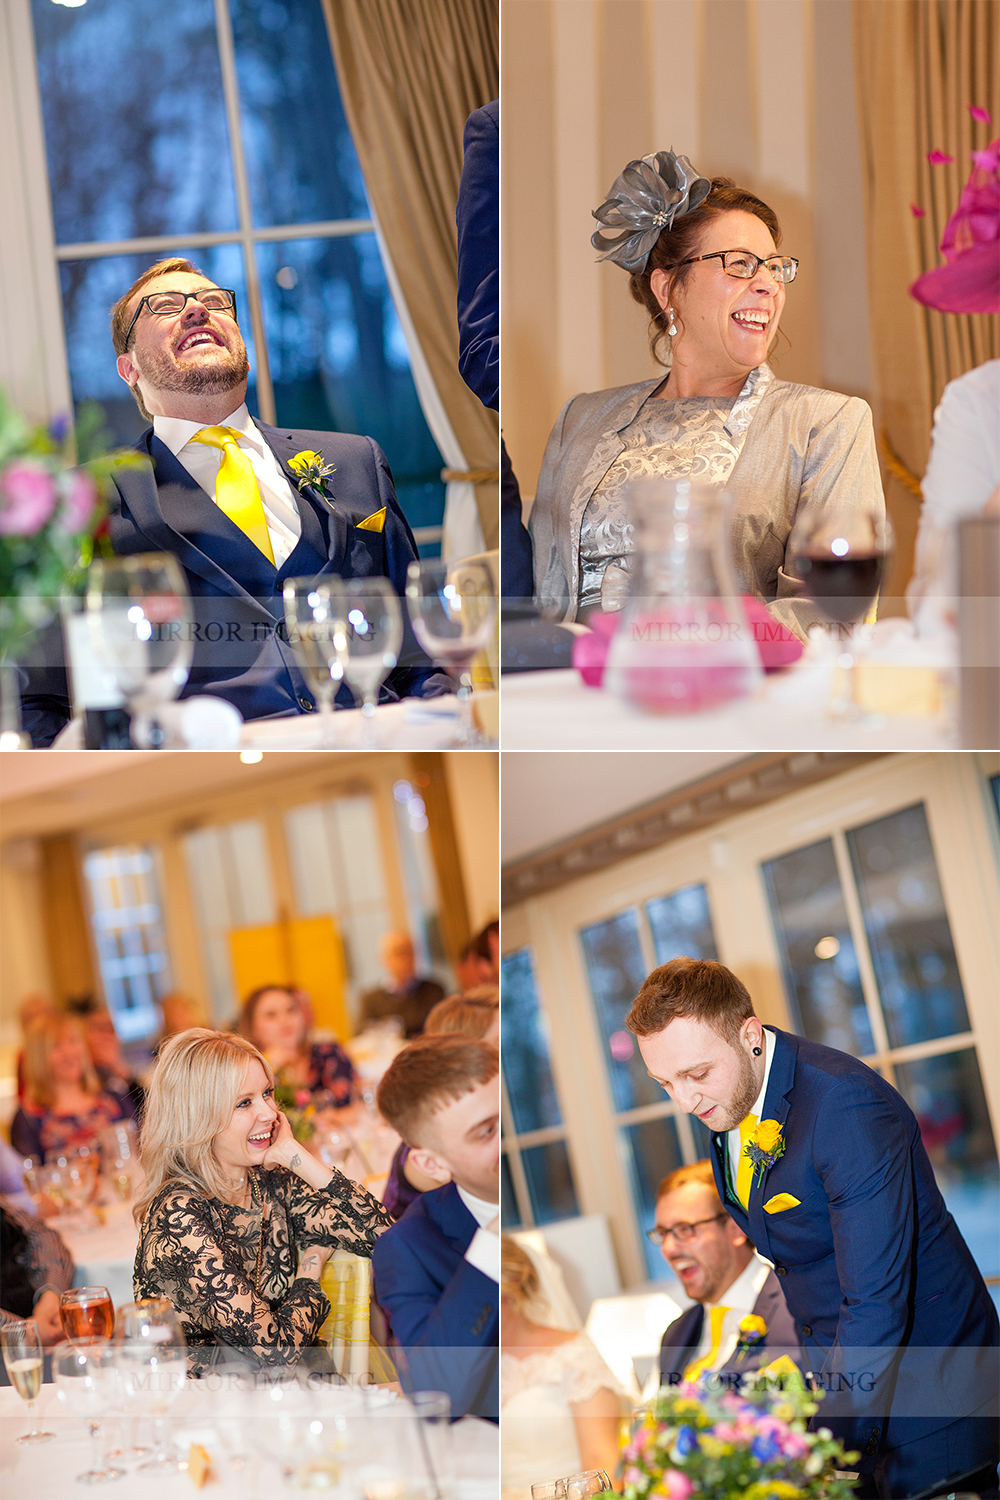 notts wedding photographer 57.jpg